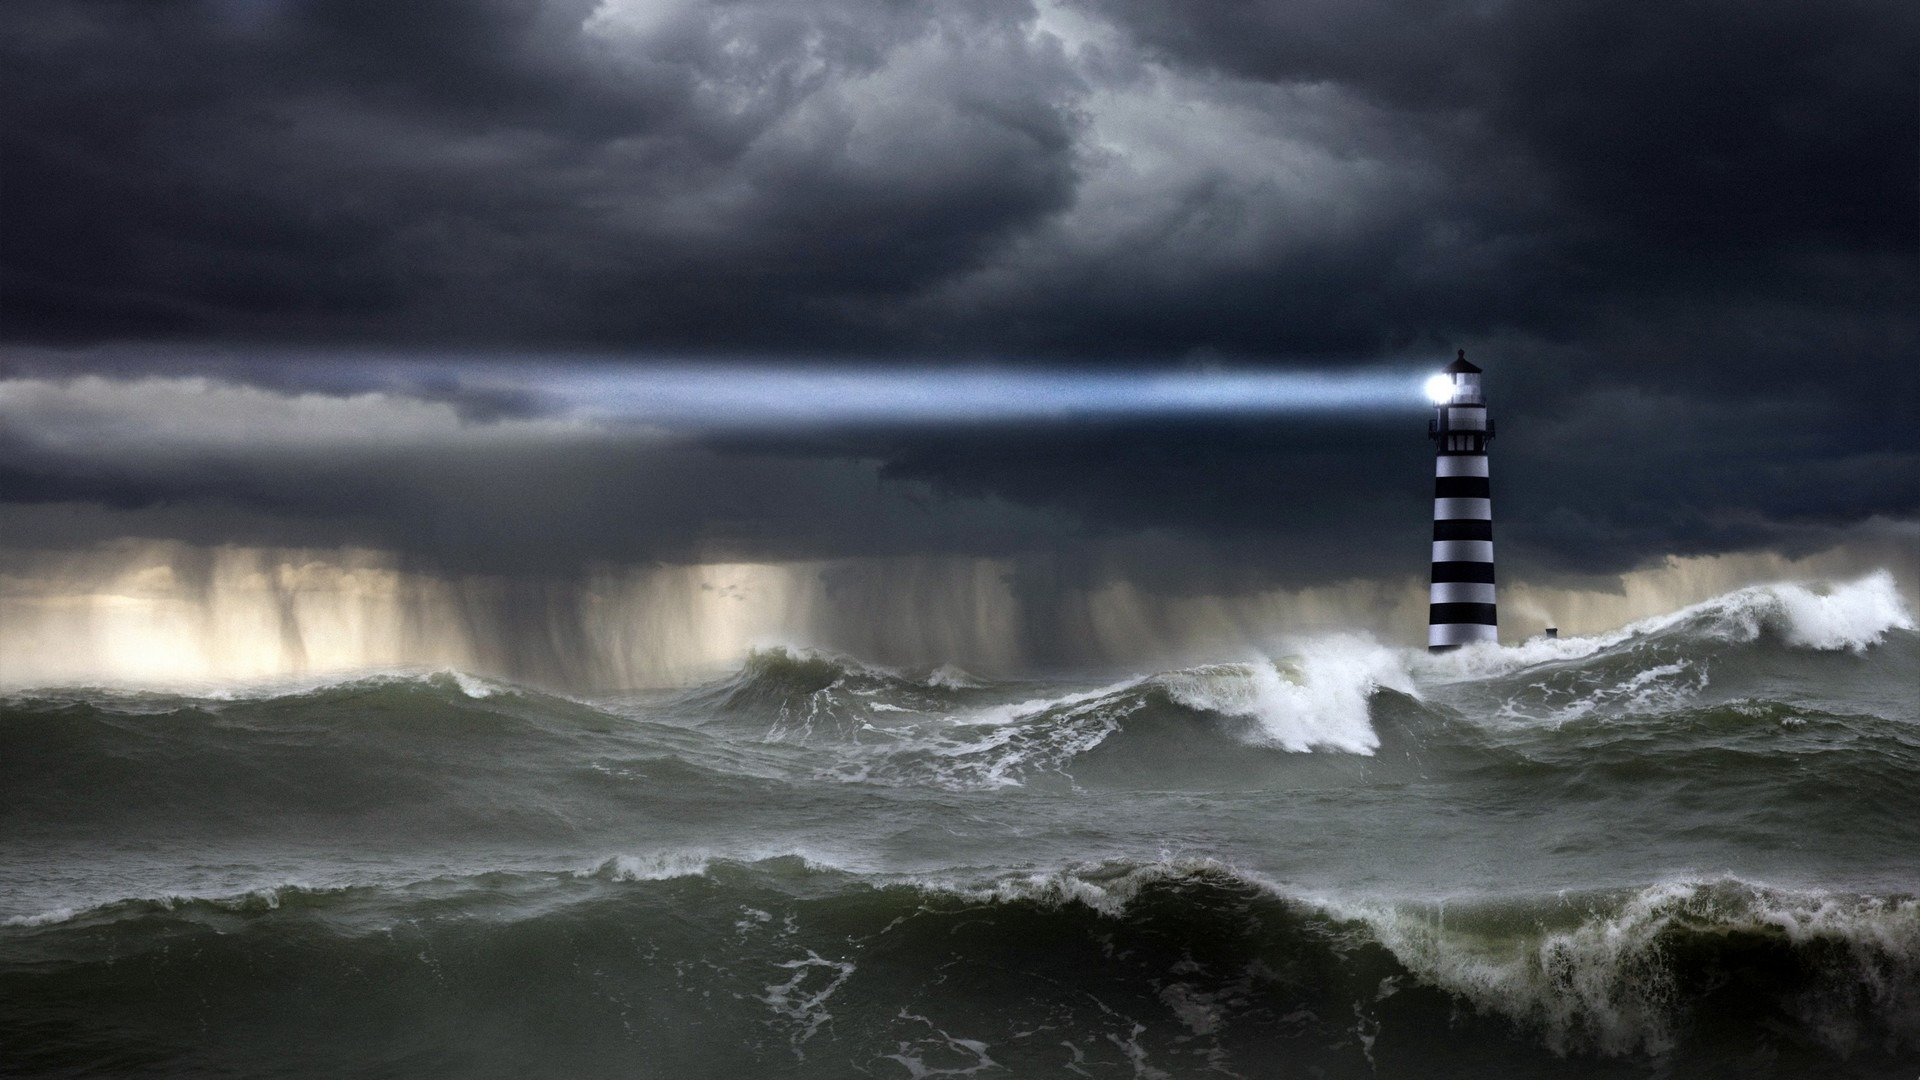 Lighthouse in Storm - Image by © John Lund/Corbis